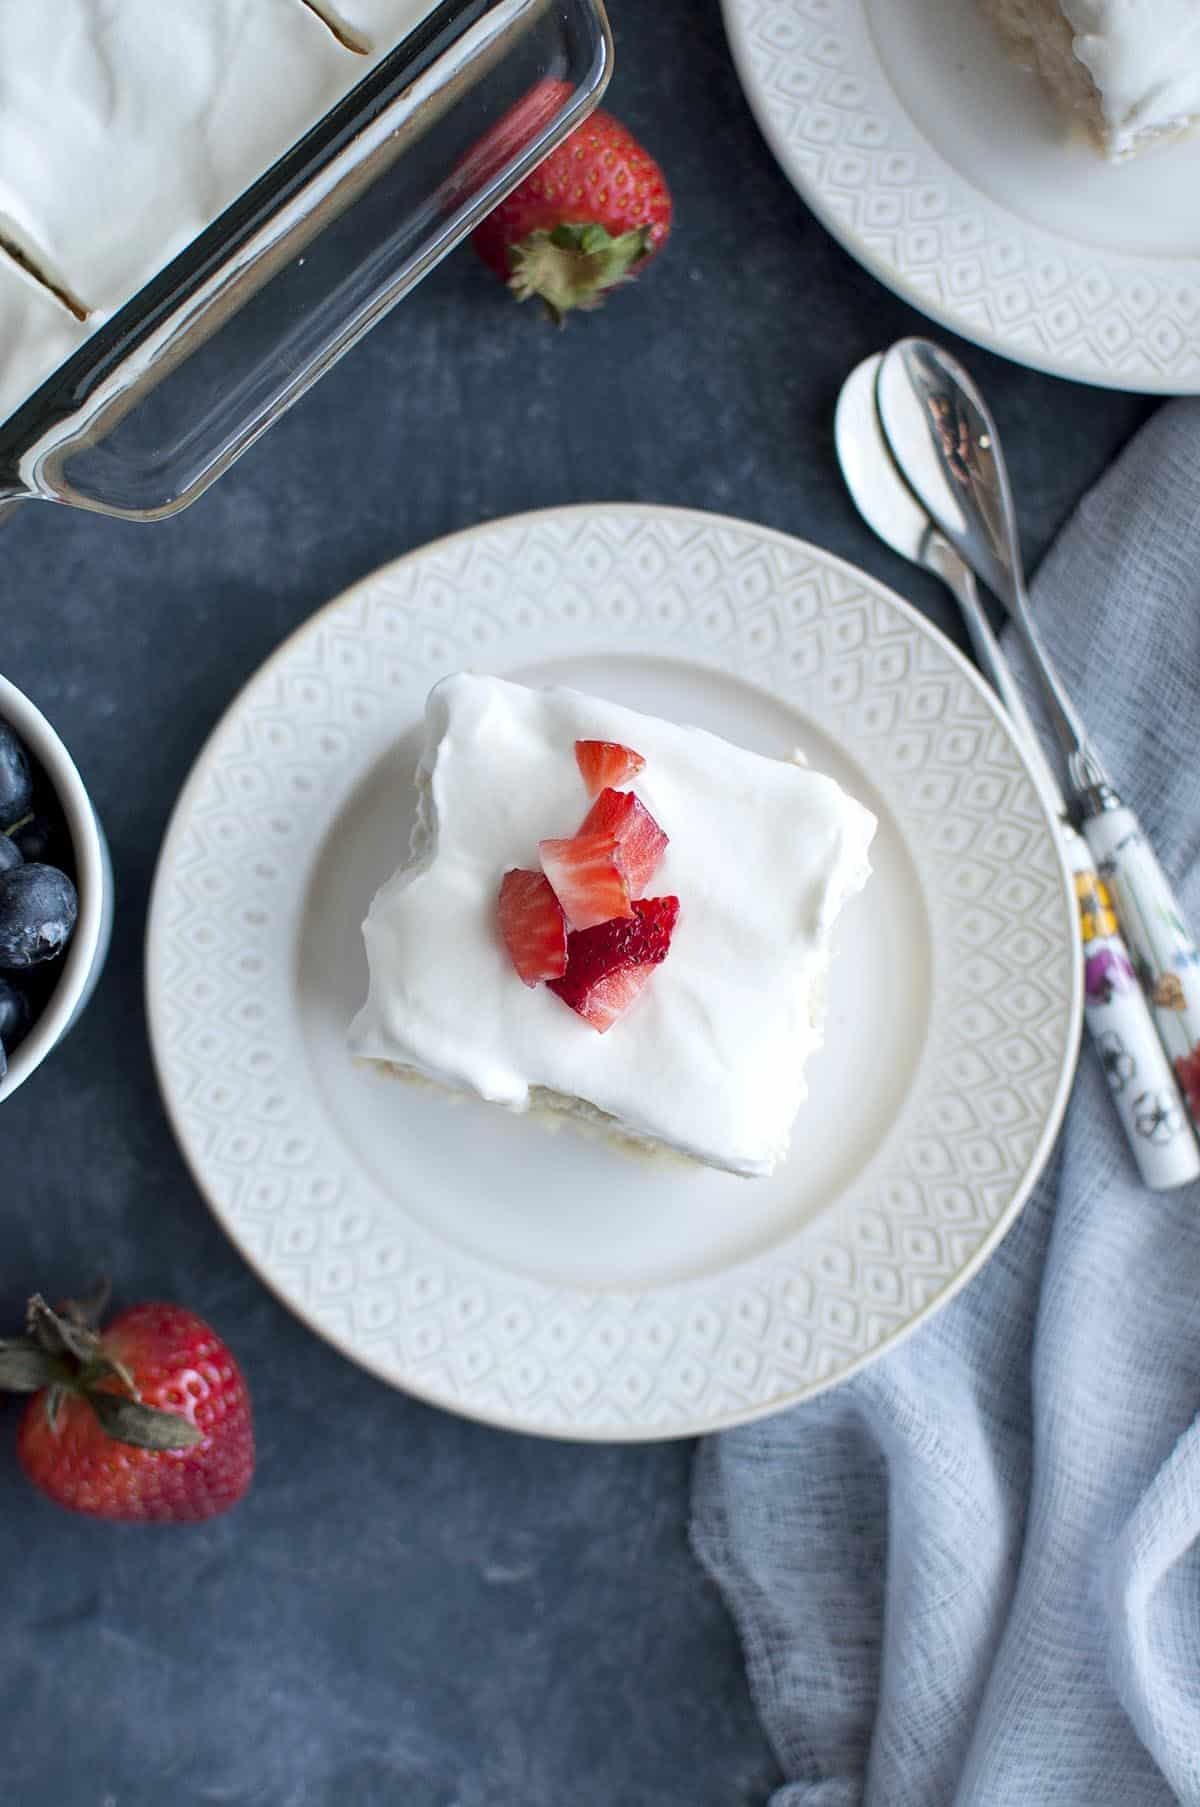 Top view of a white plate with vegan tres leche cake topped with whipped cream and chopped berries